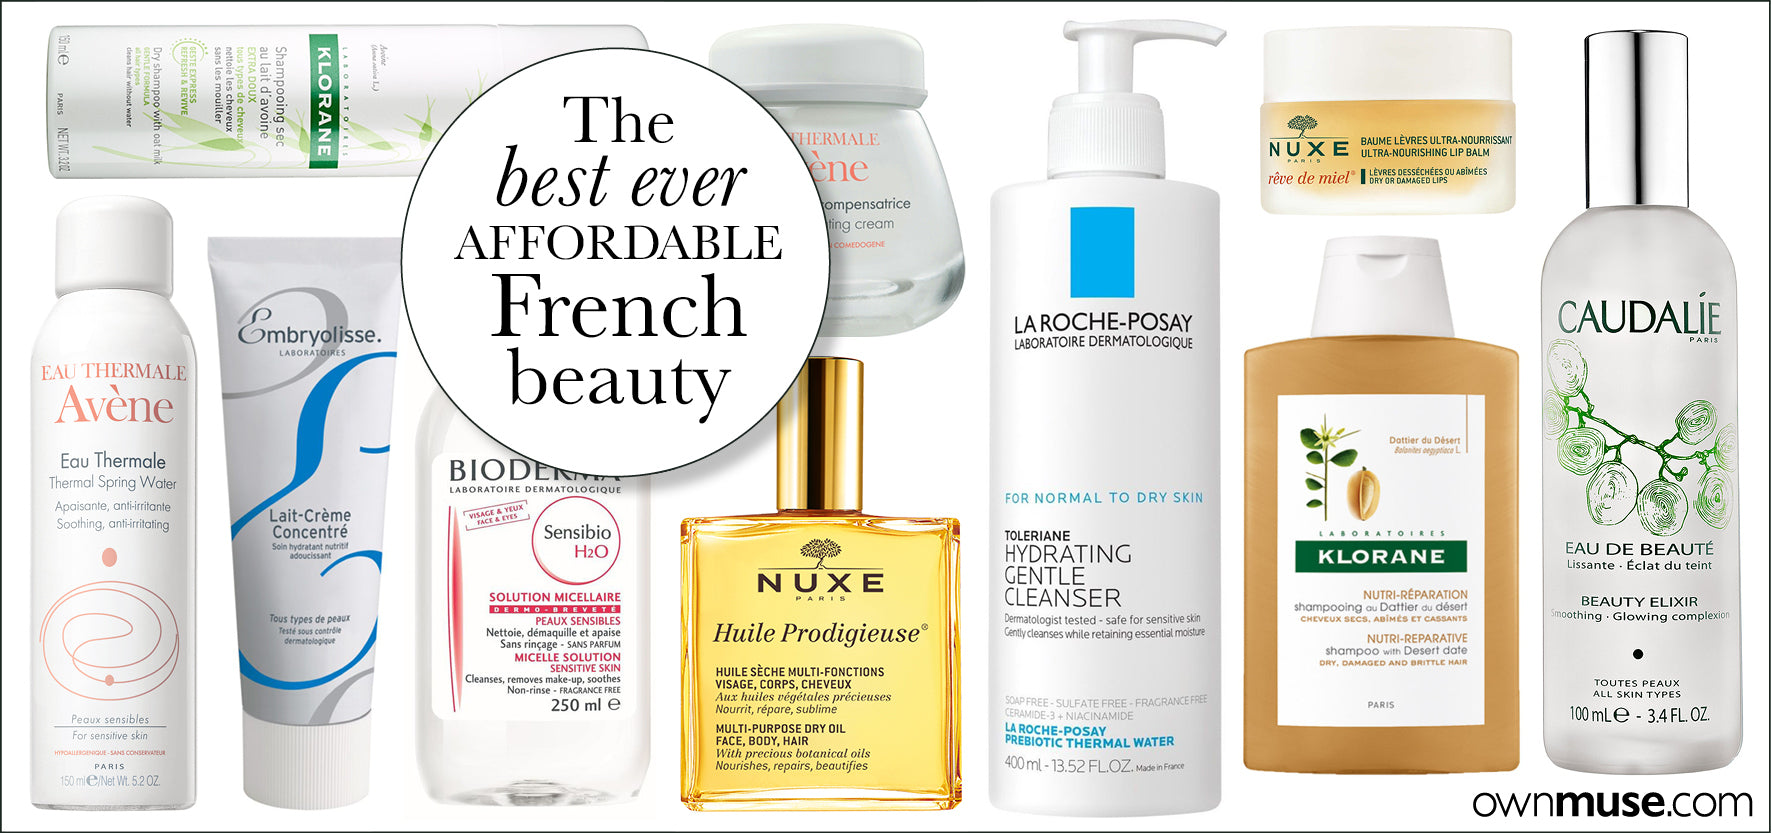 The best ever selection of French beauty products - collage design - ownmuse.com